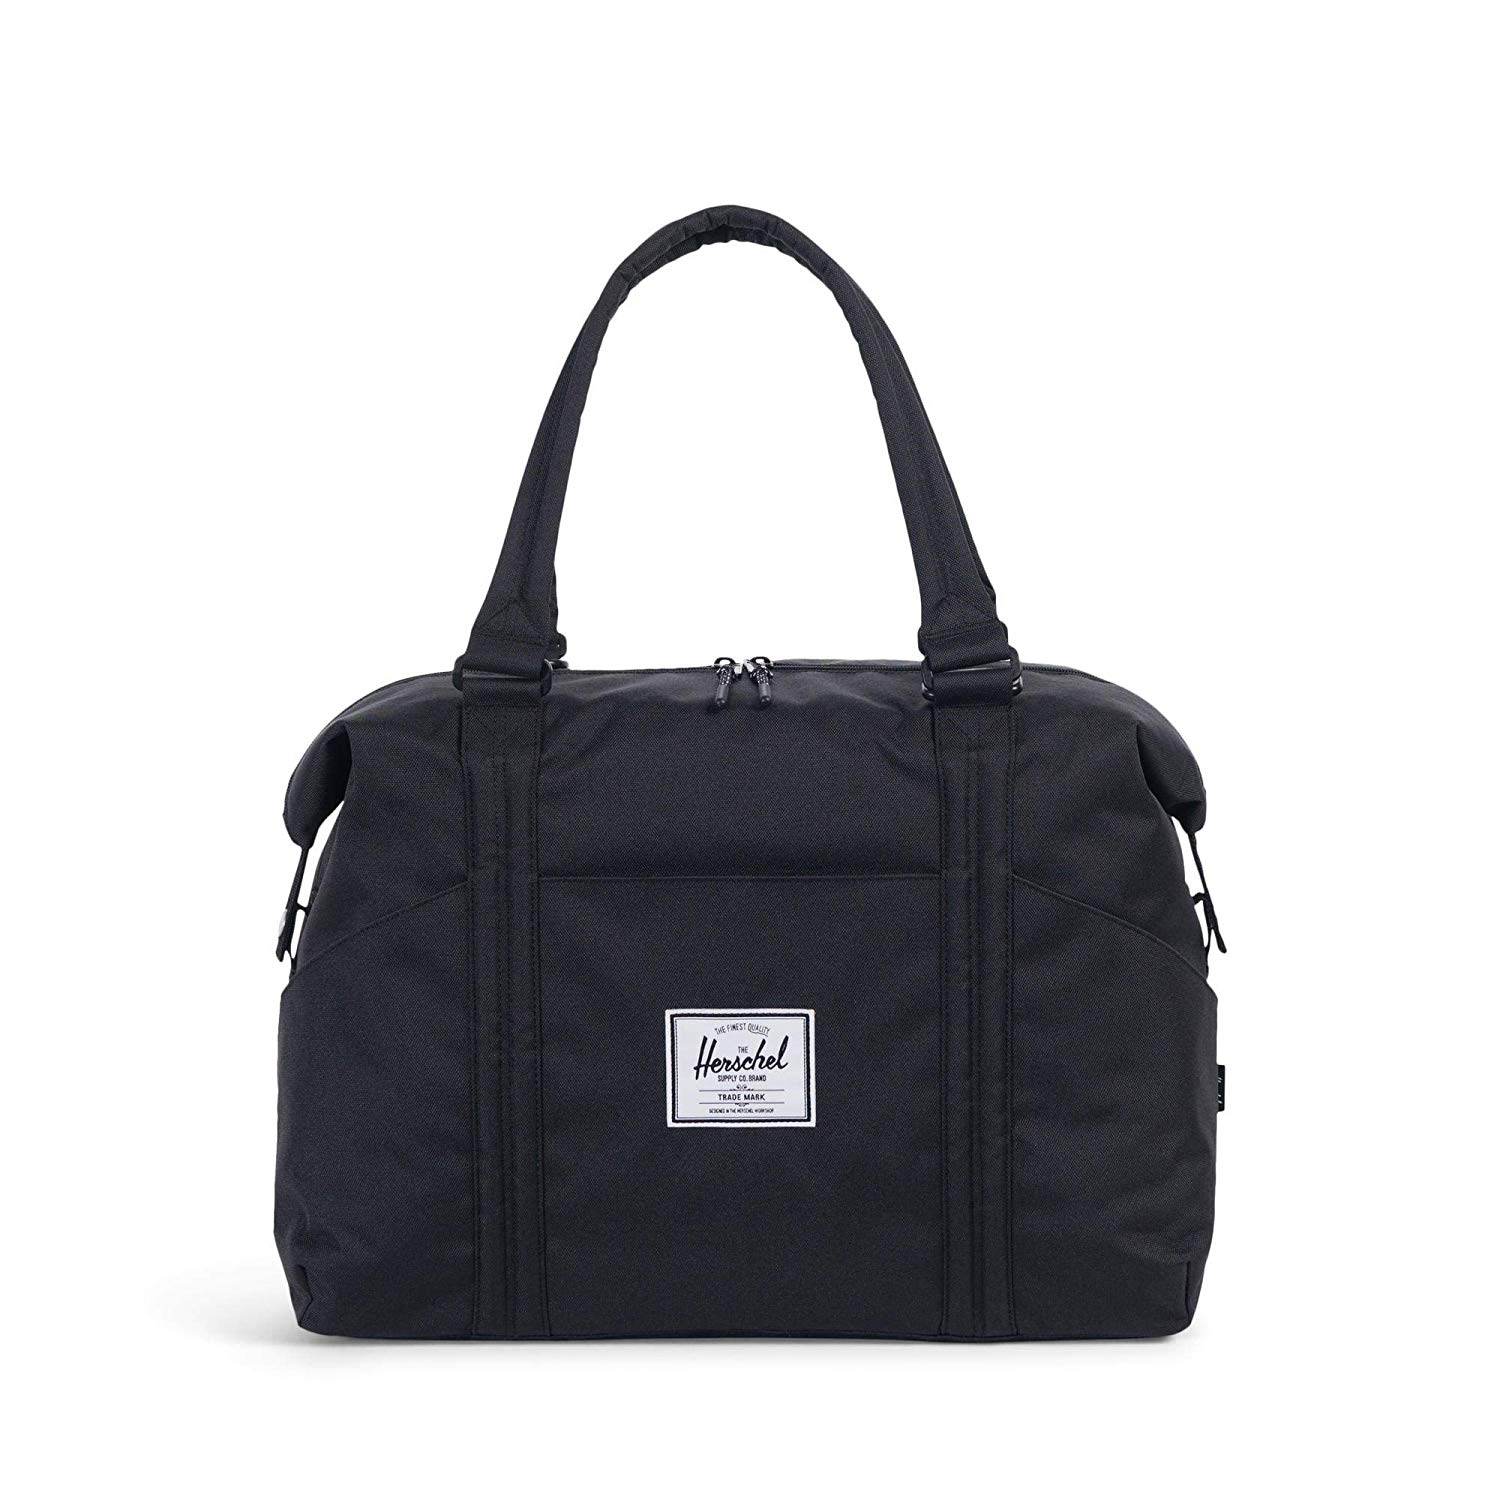 Herschel Strand Sprout Diaper Bag-Black